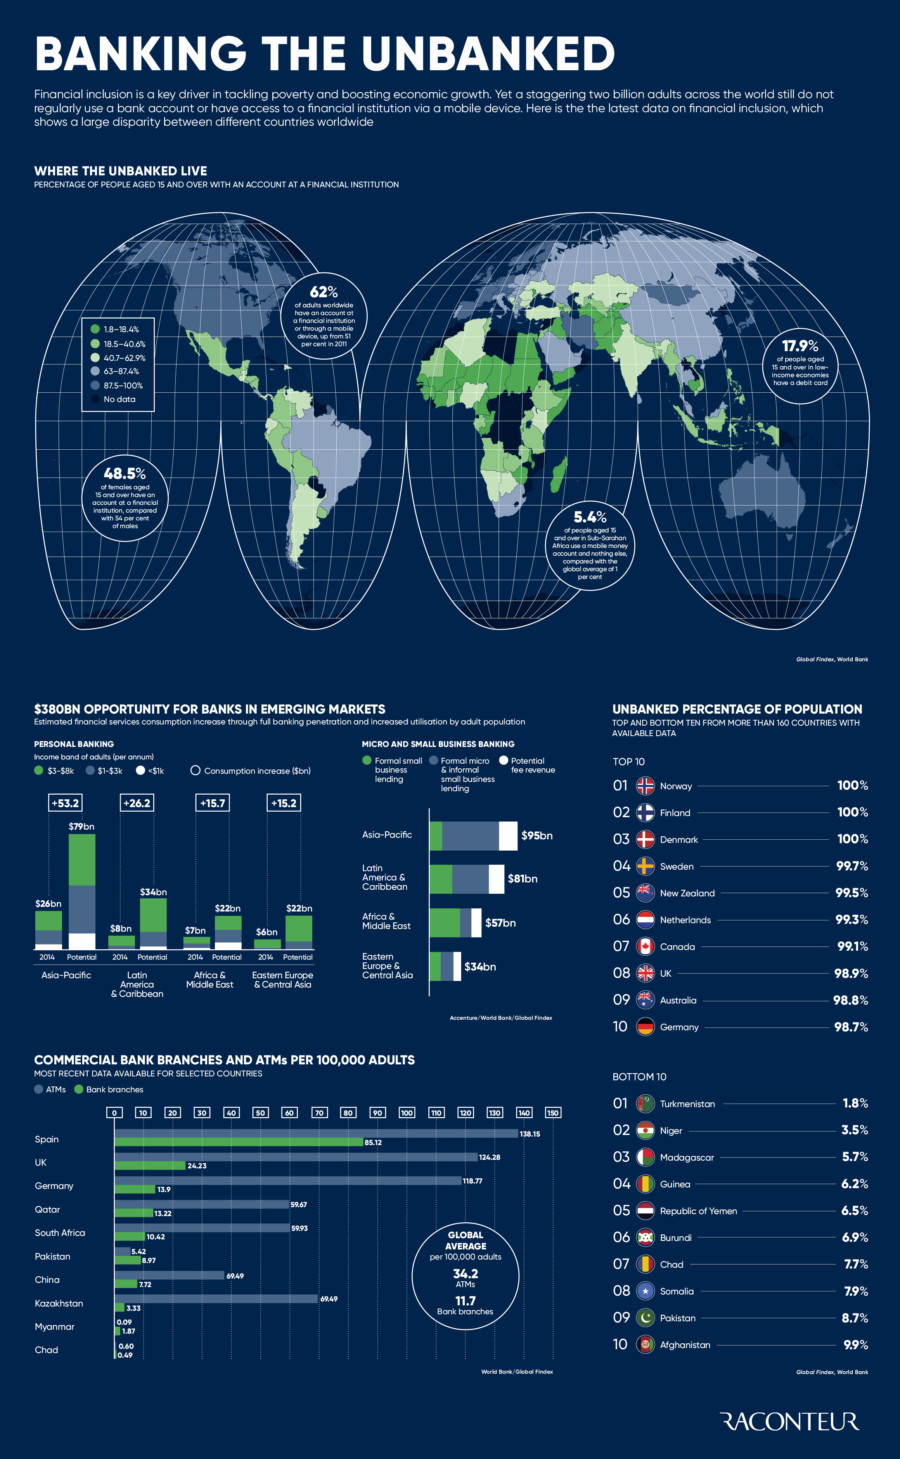 Banking the unbanked infographic